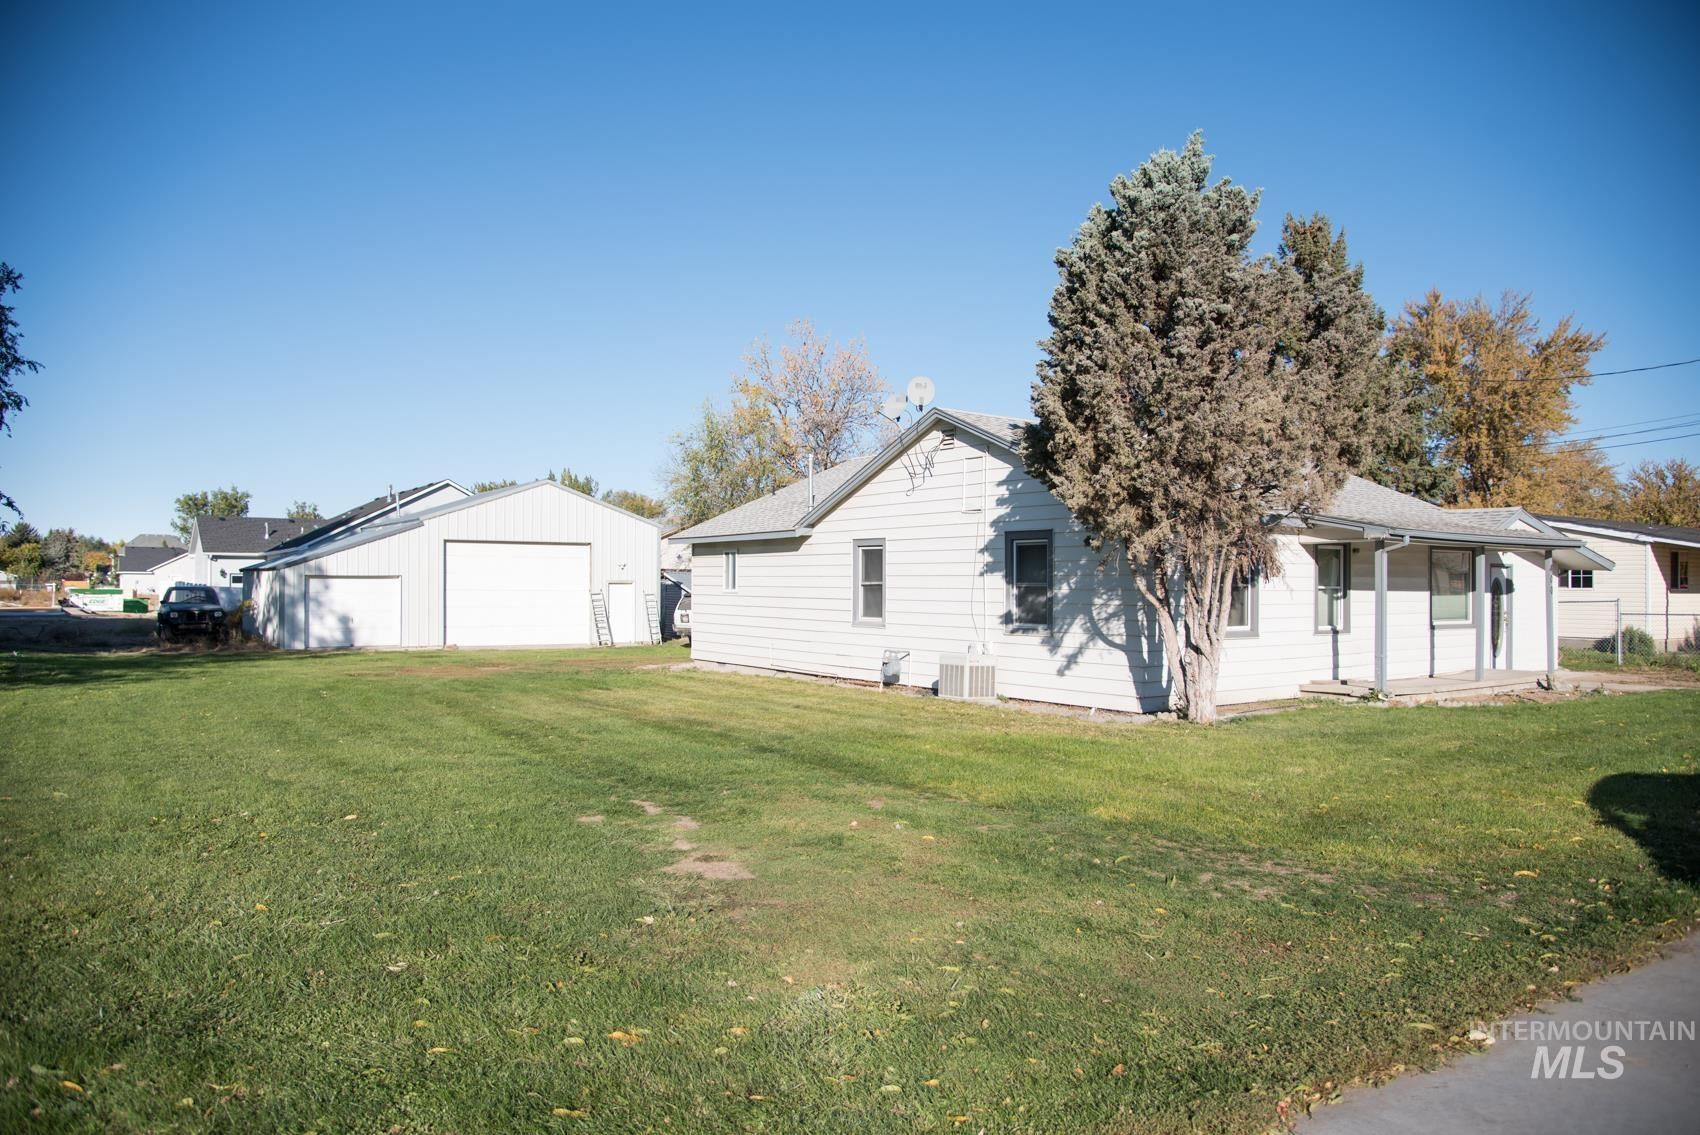 400 S 16th St, Payette, ID 83661 - MLS#: 98822363